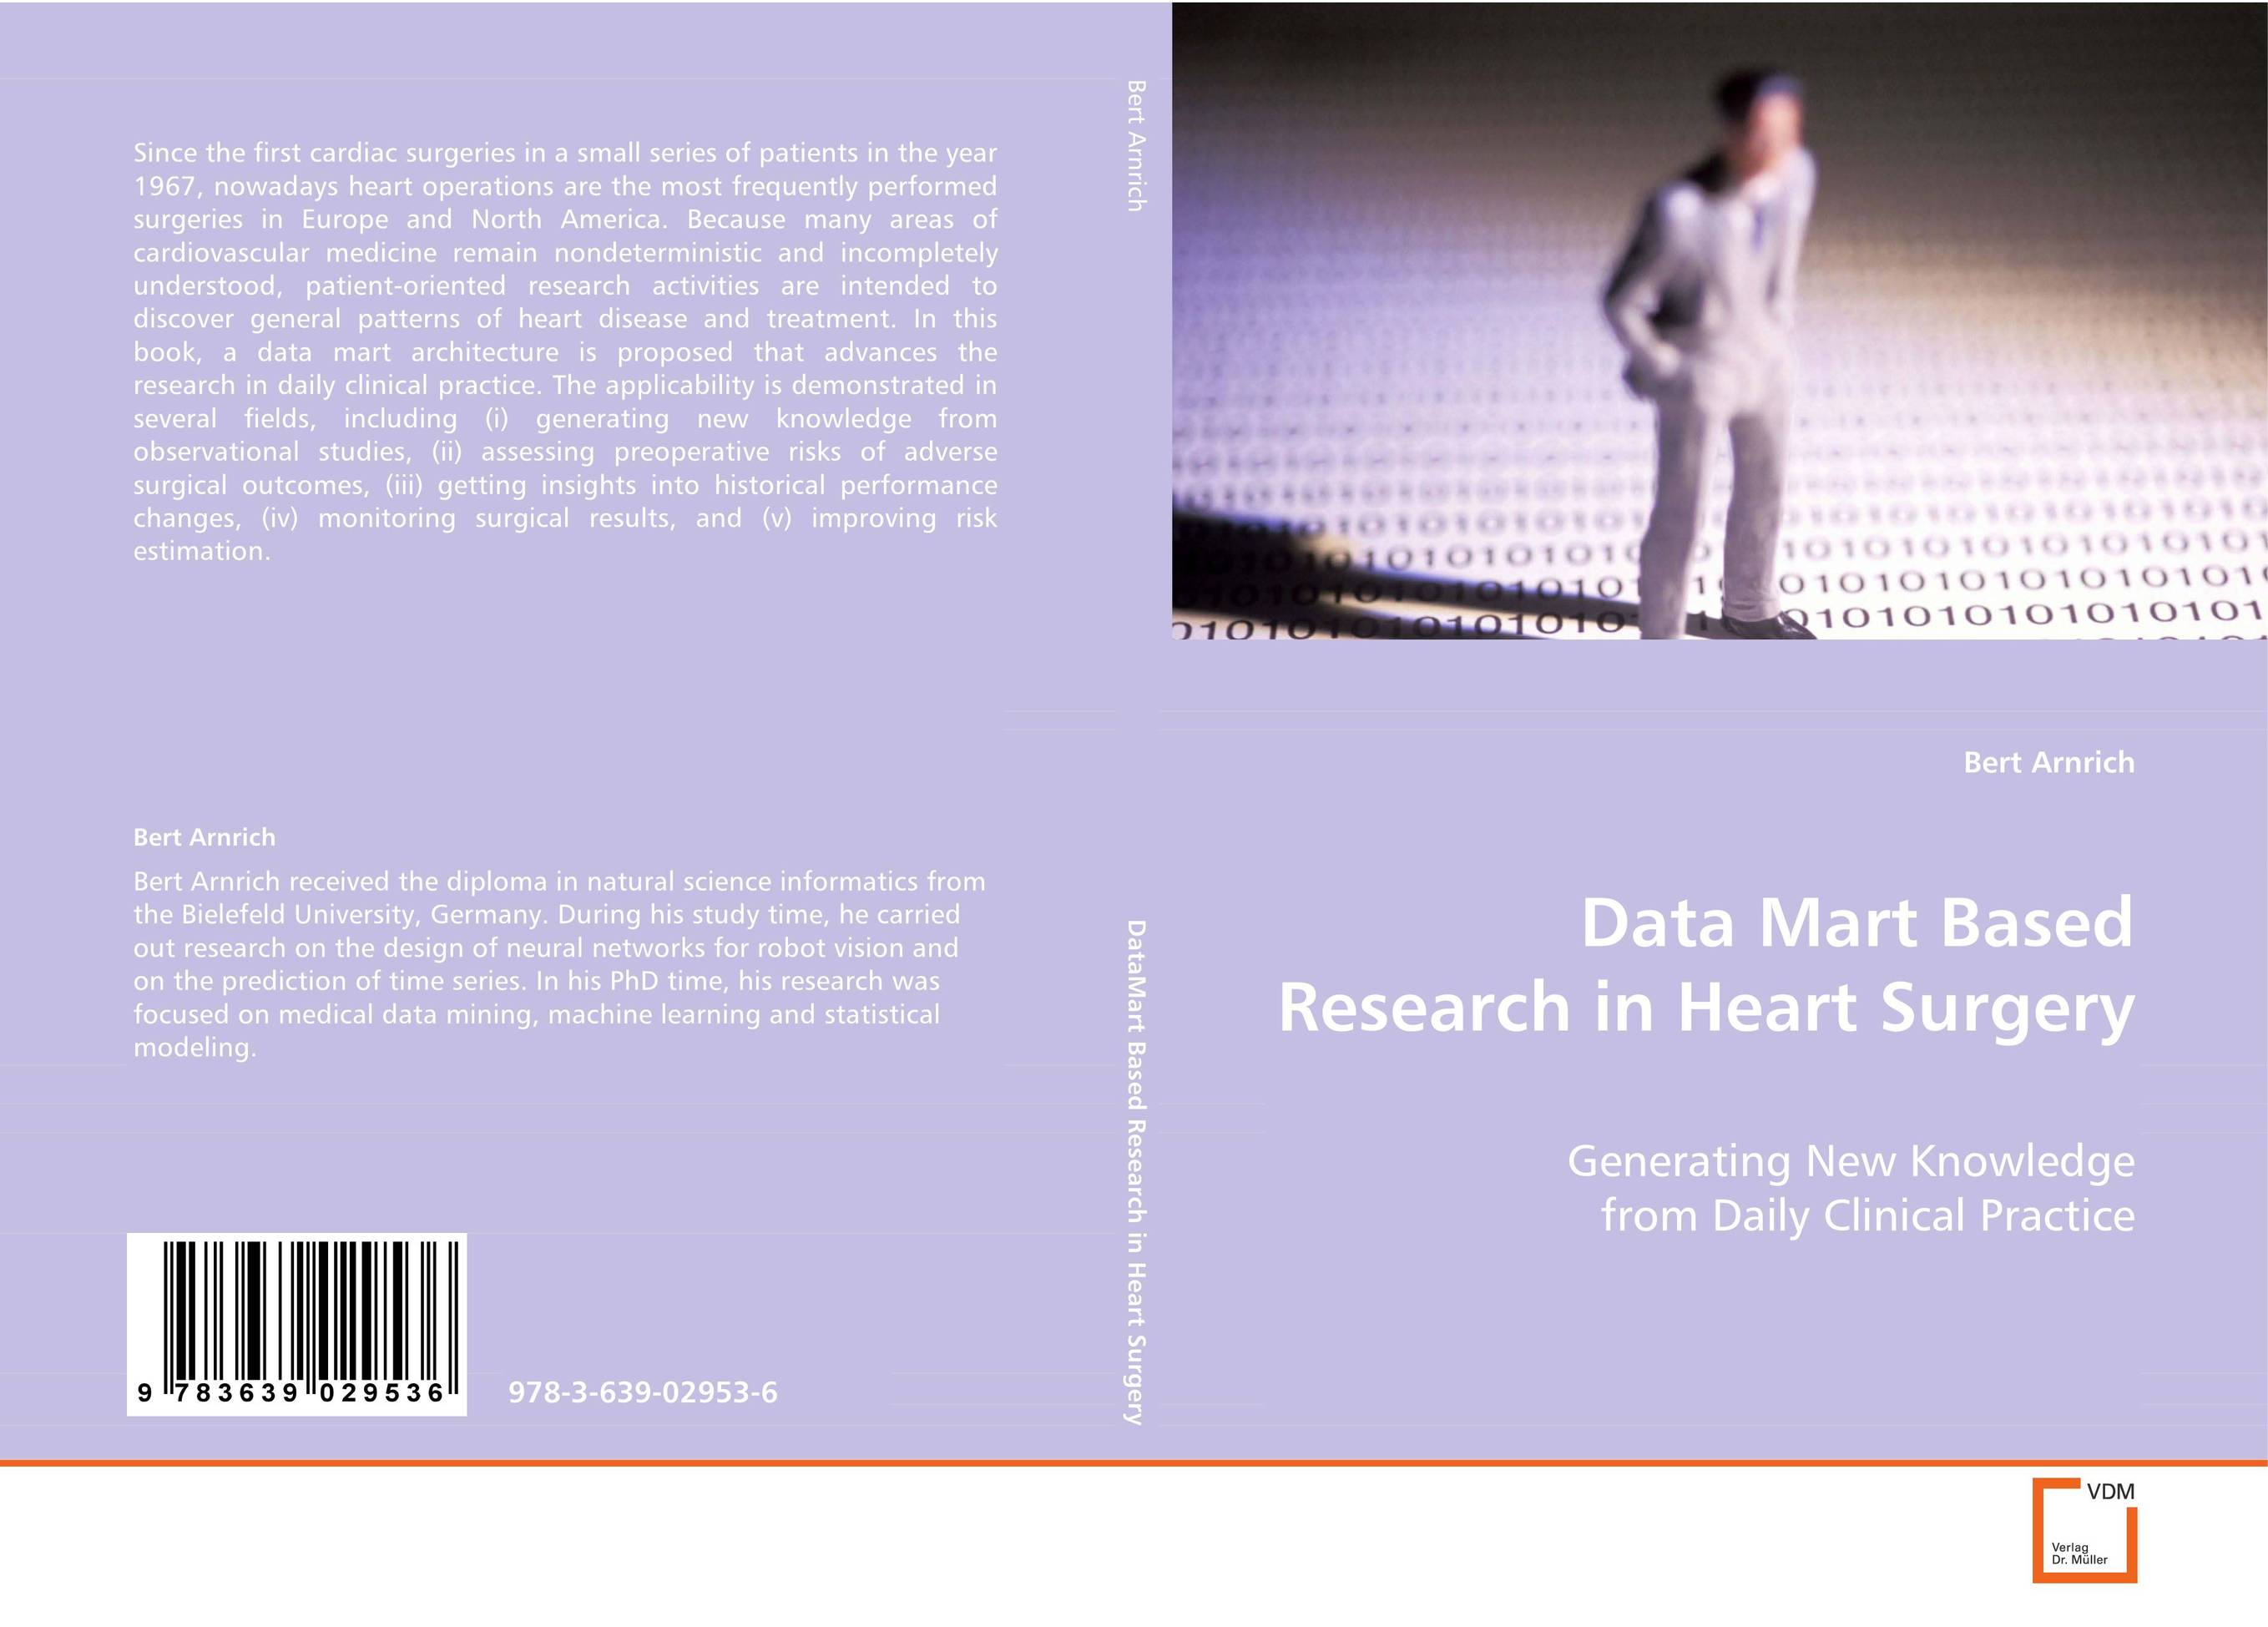 Data Mart Based Research in Heart Surgery mart laar the power of freedom